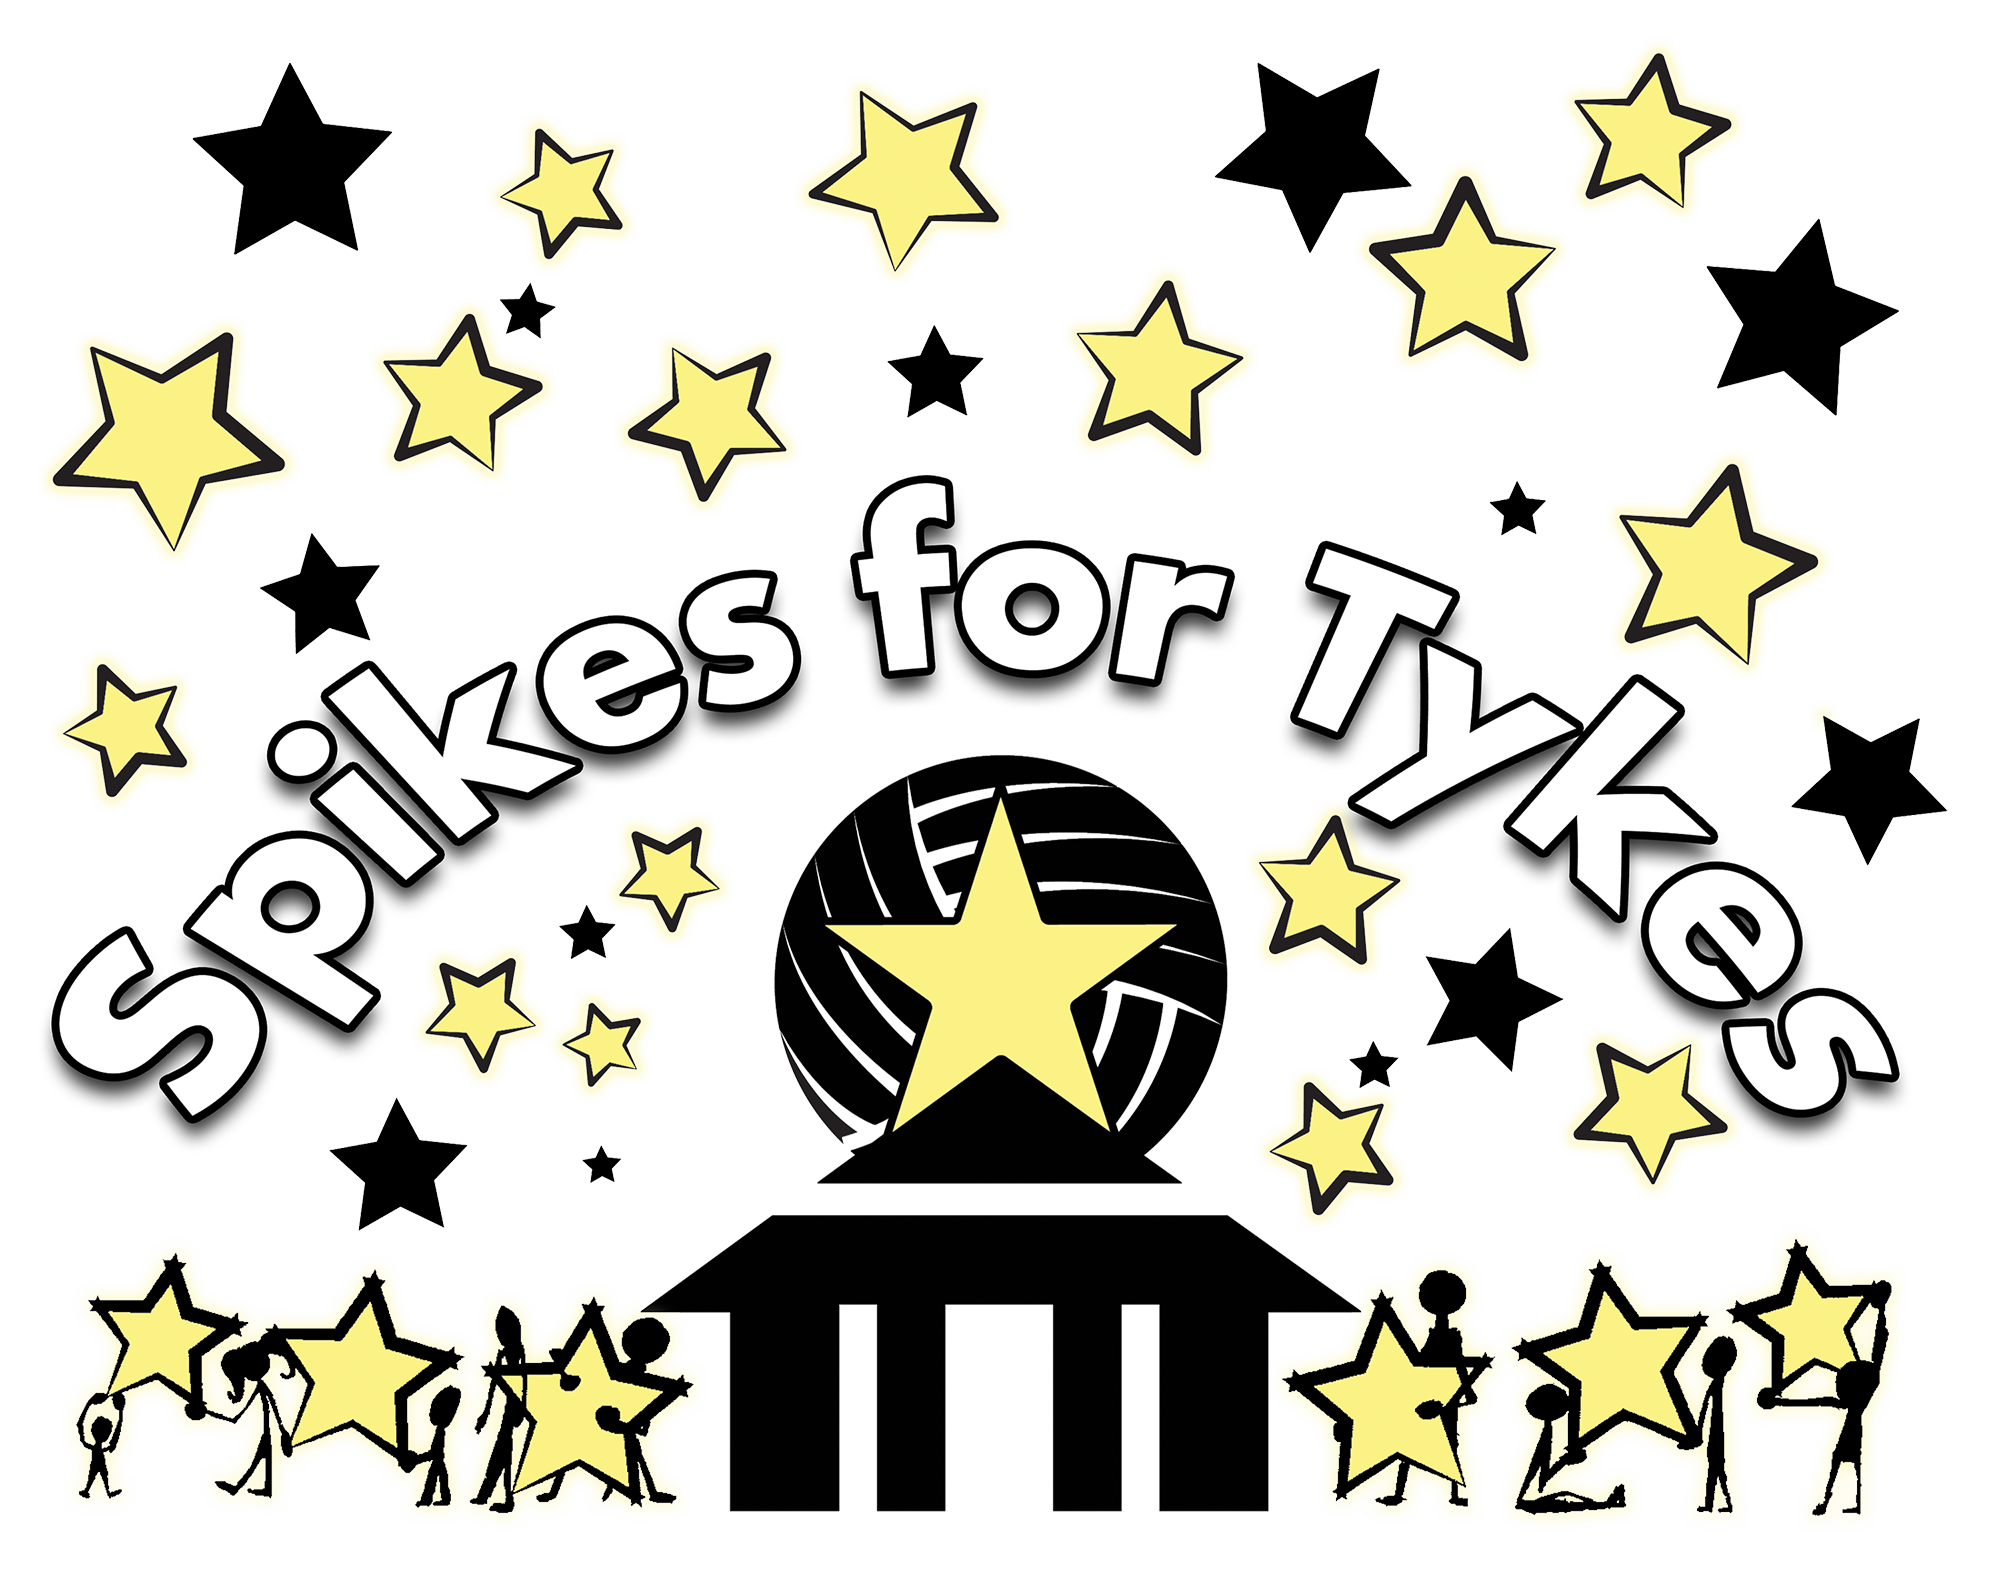 http://spikesfortykes.org/wp-content/uploads/2017/10/Spikes2017-Logo.png